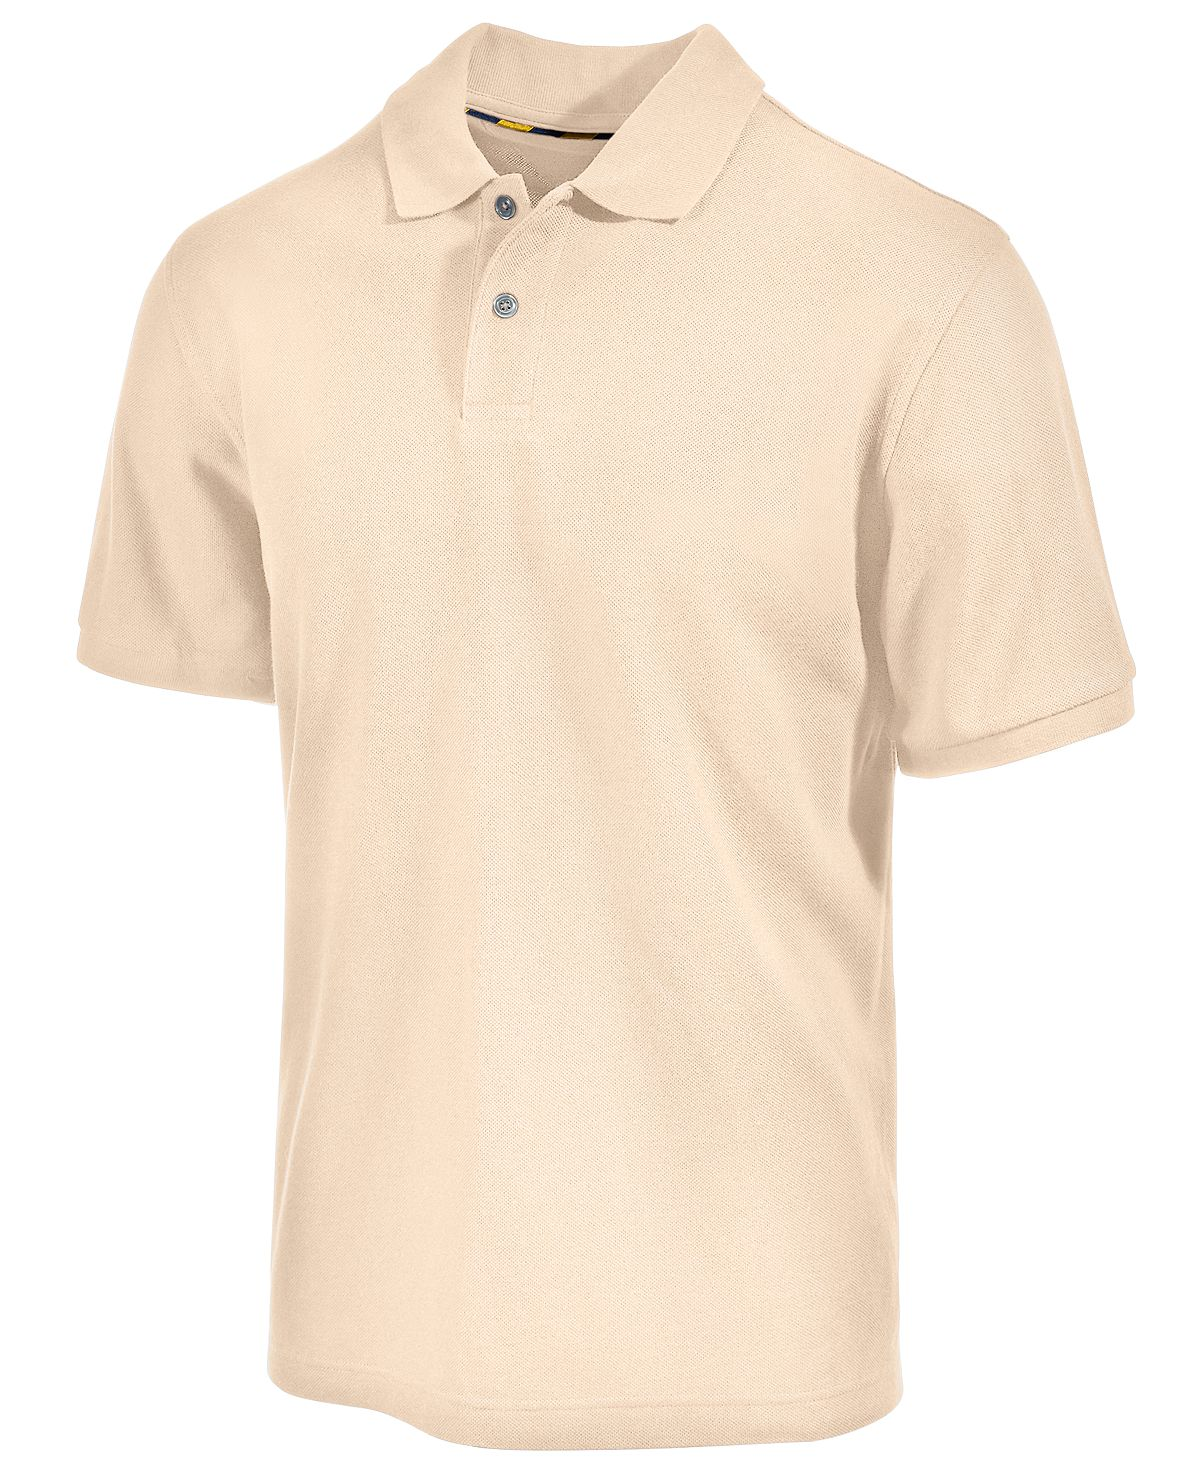 Club Room Classic-fit Solid Performance Upf 50+ Polo Natural